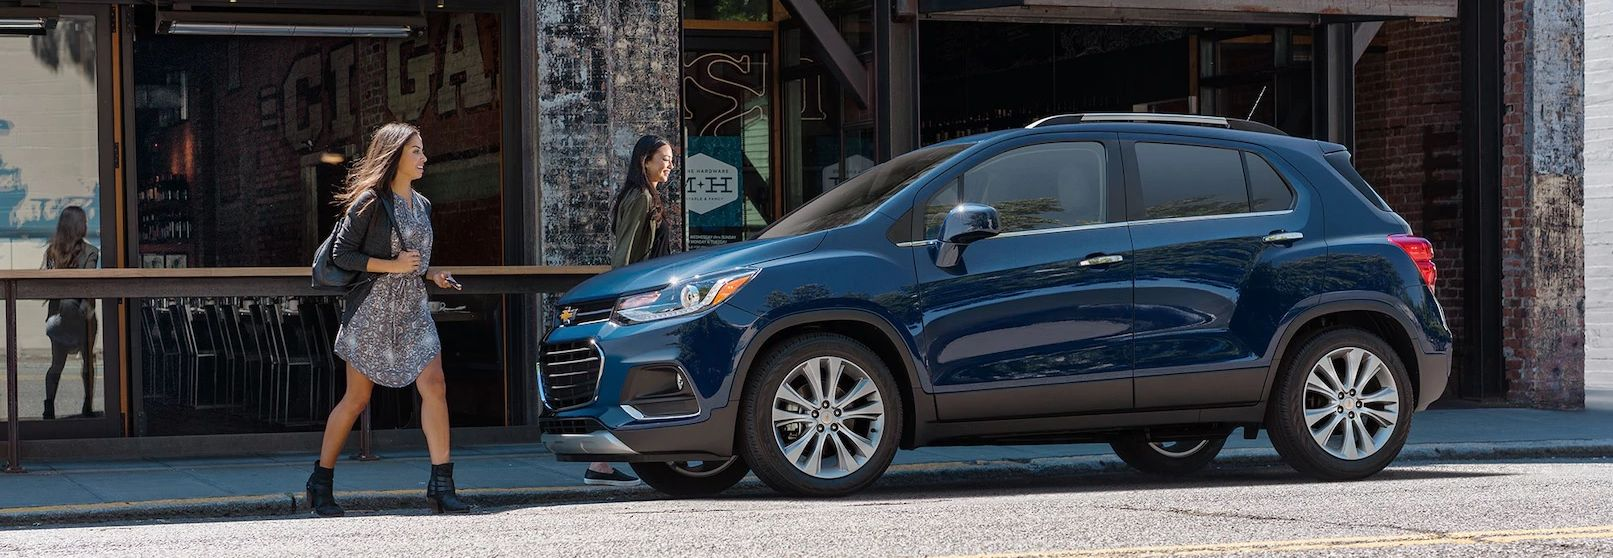 2018 Chevrolet Trax for Sale in Chicago, IL